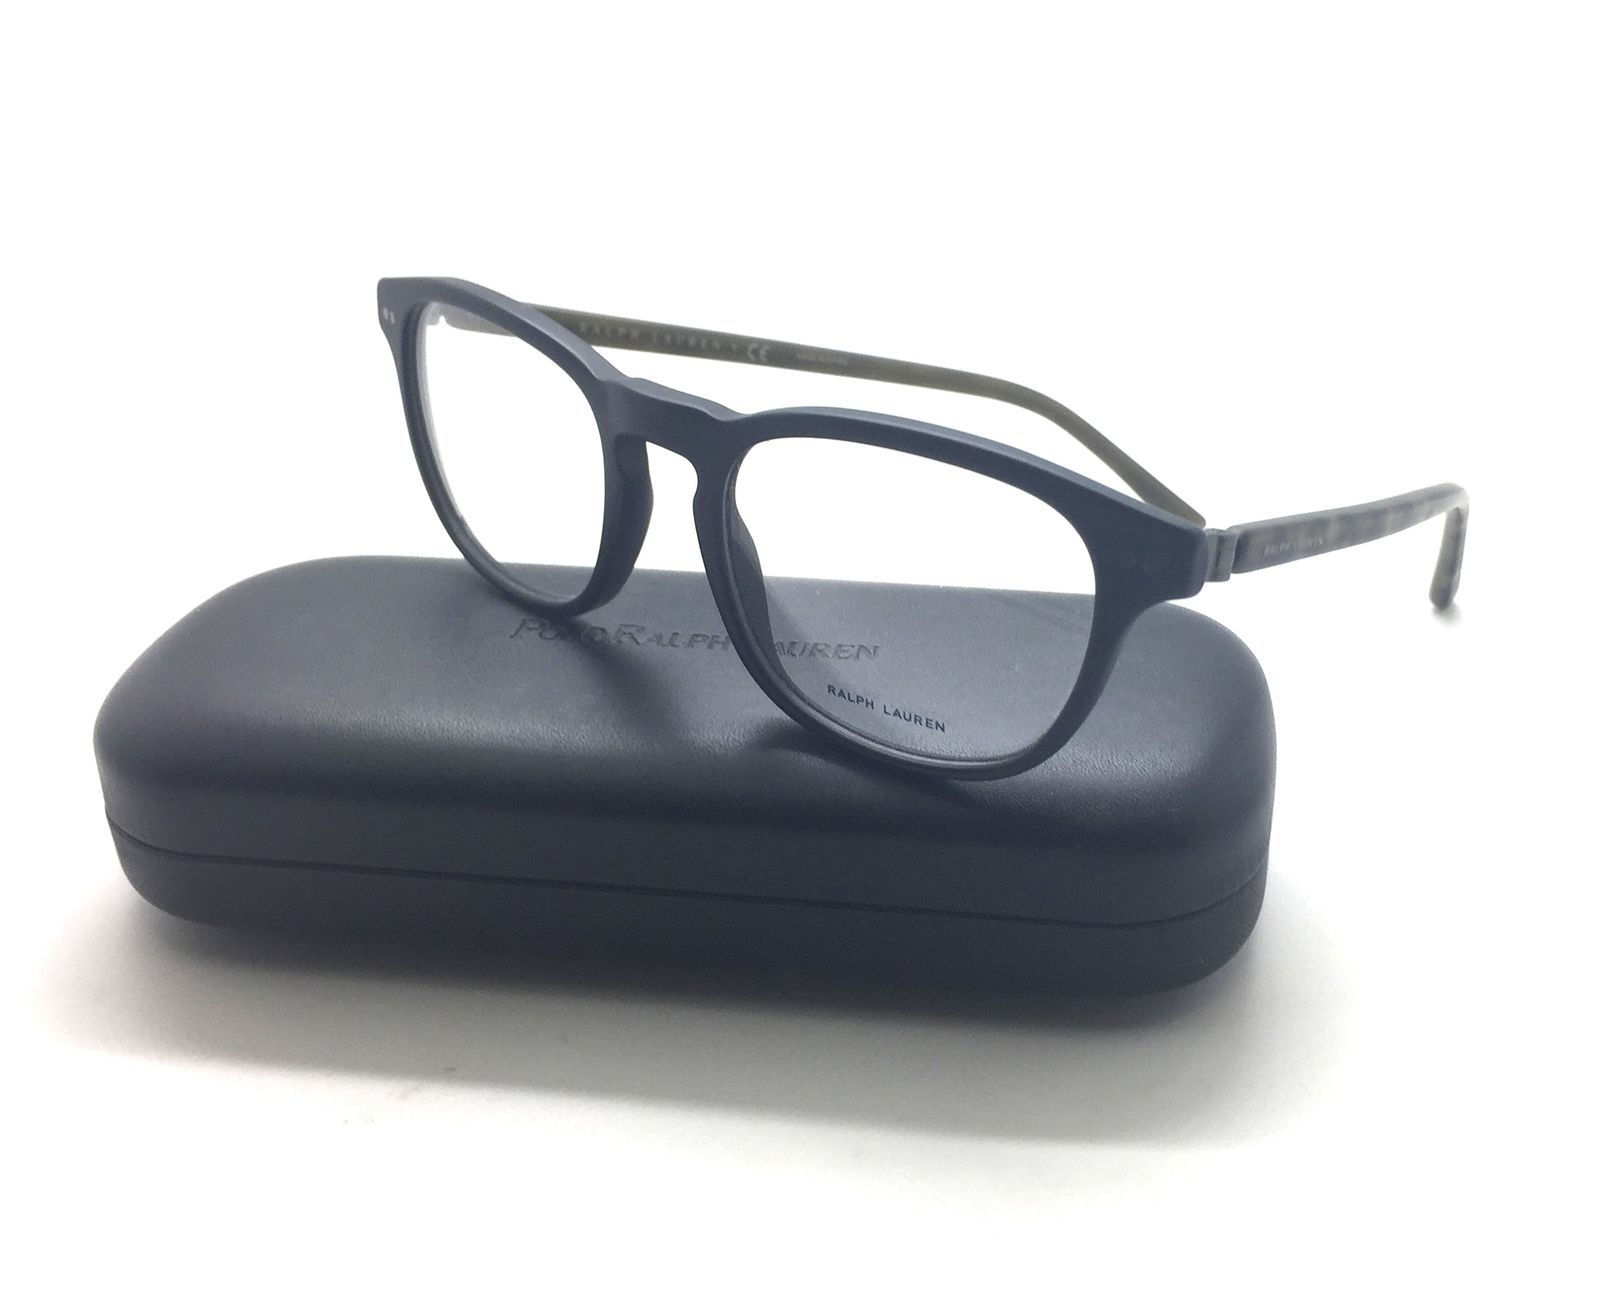 a059950650 Polo Ralph Lauren PH 2107 Matte Black 5284 Eyeglasses Olive 50-19-145 Brown  -  77.57